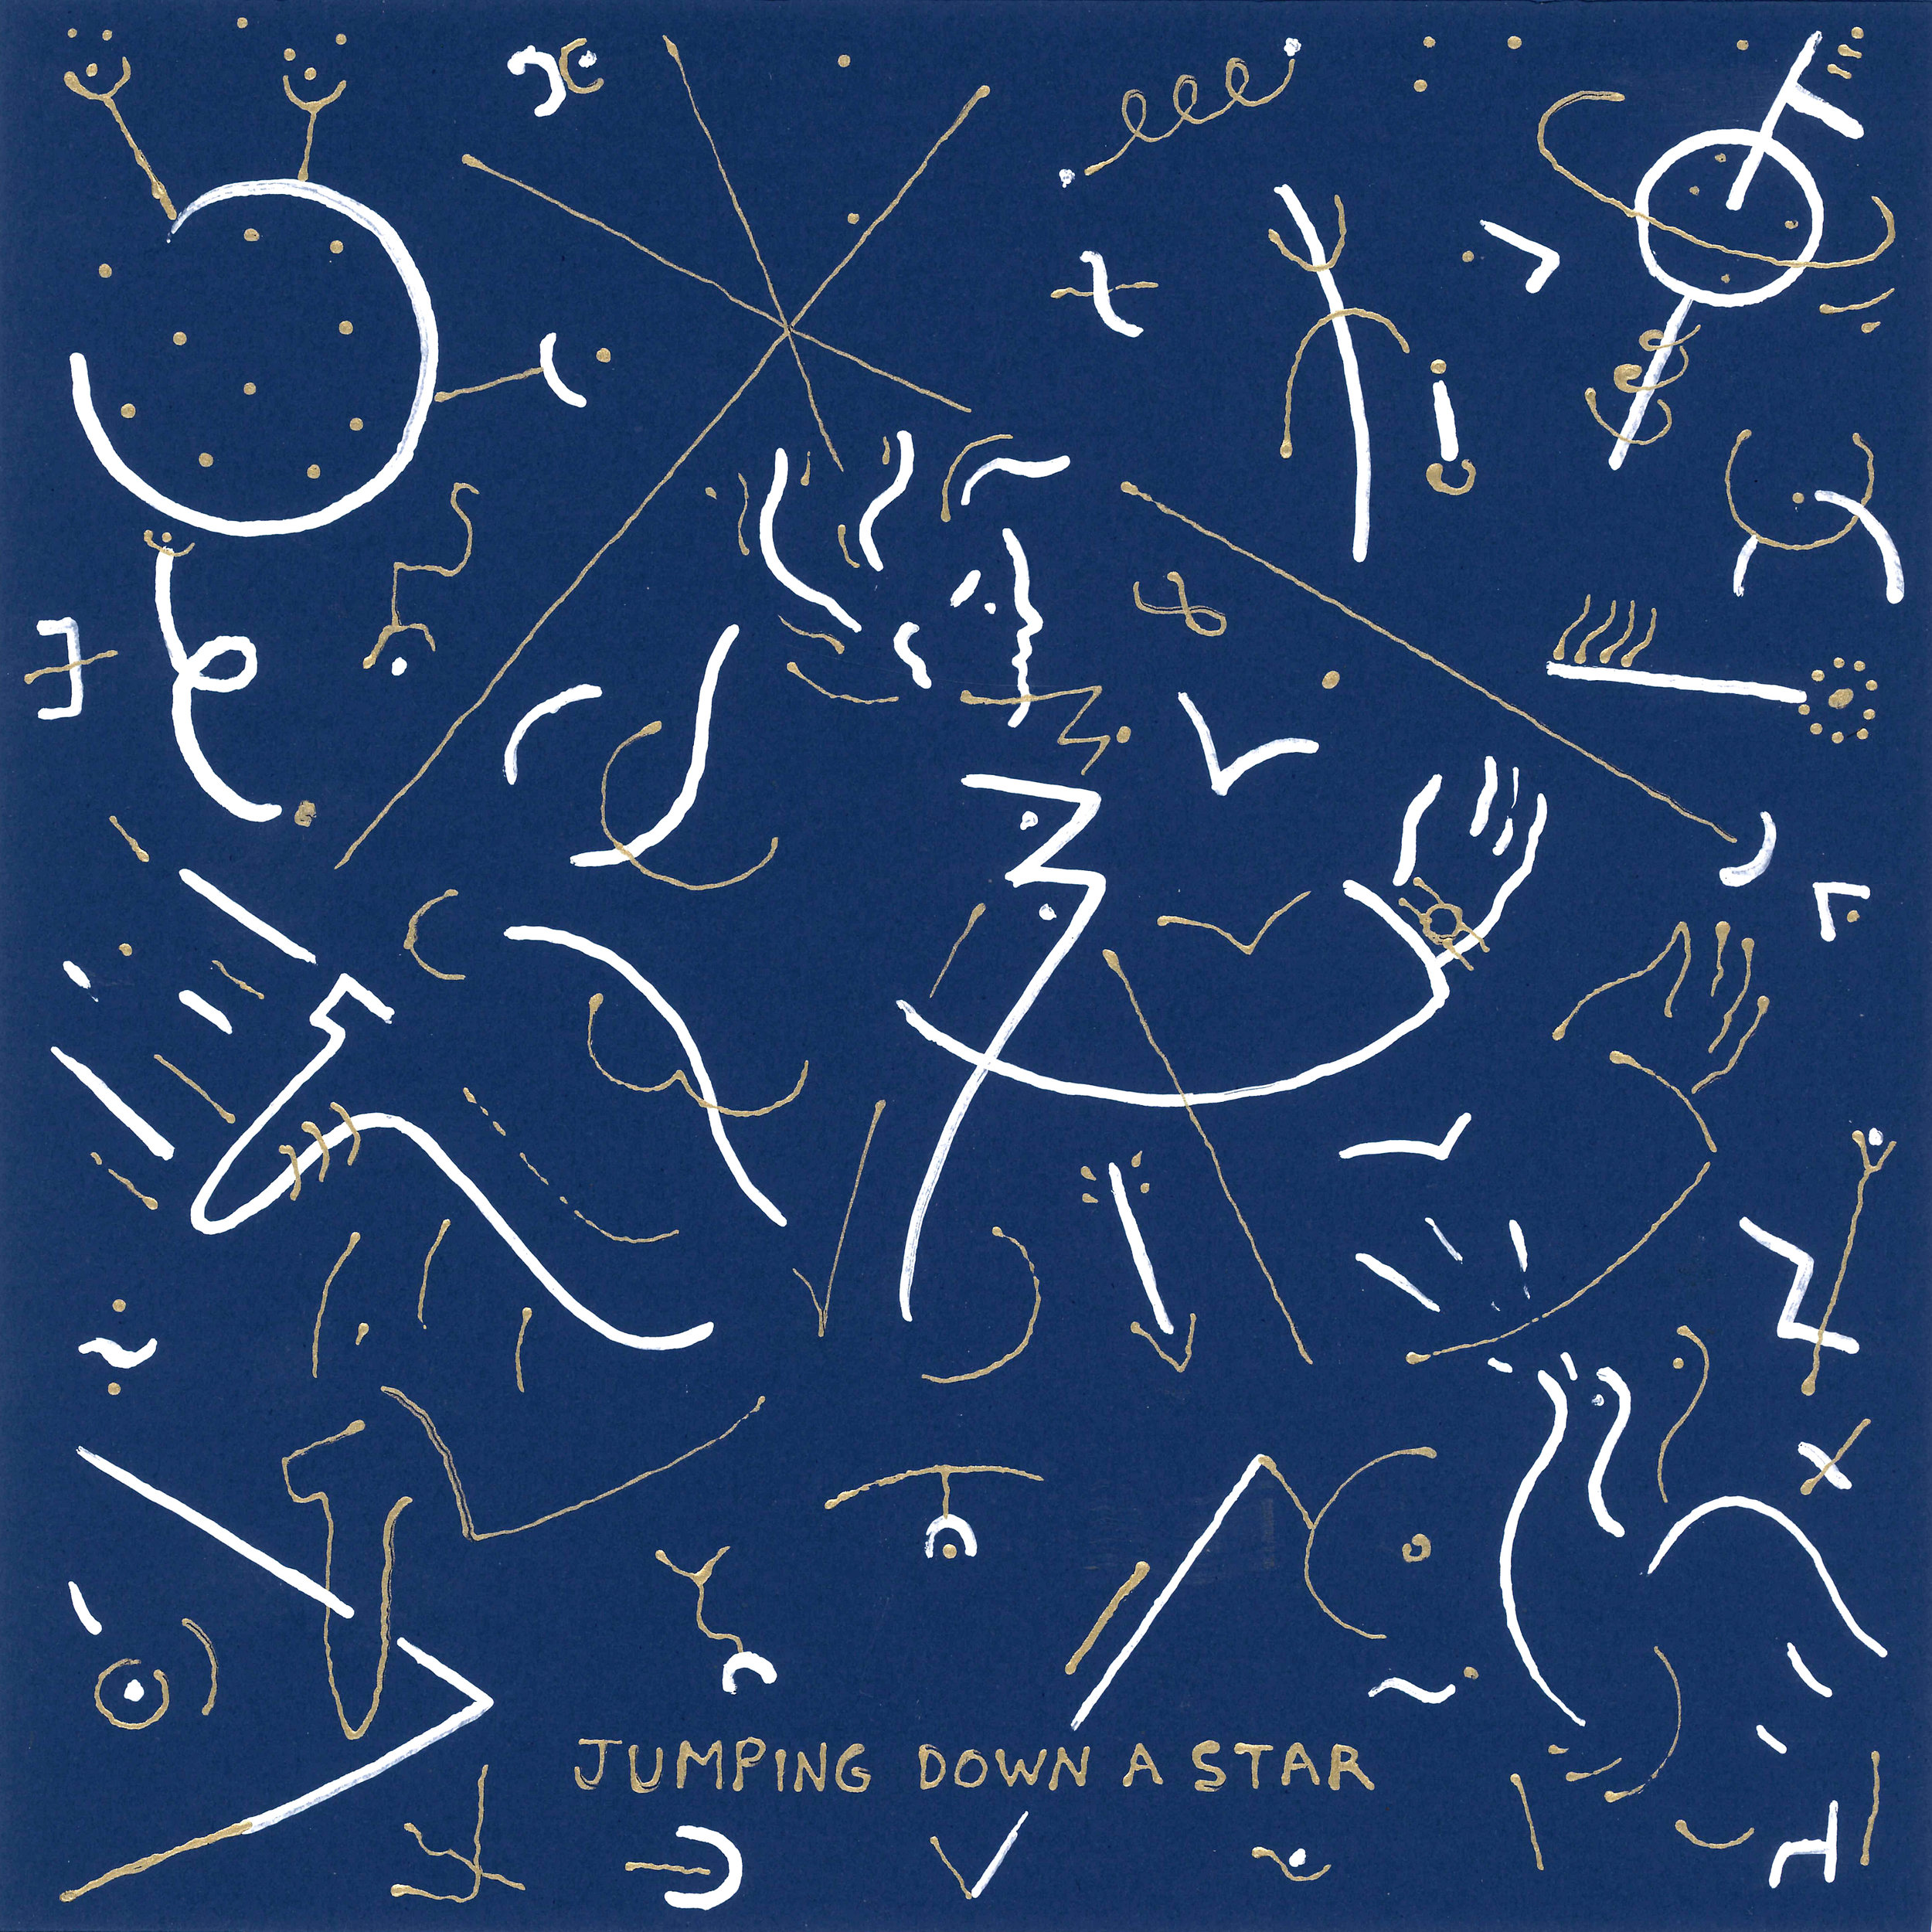 Jumping Down A Star - Debut single OUT now!